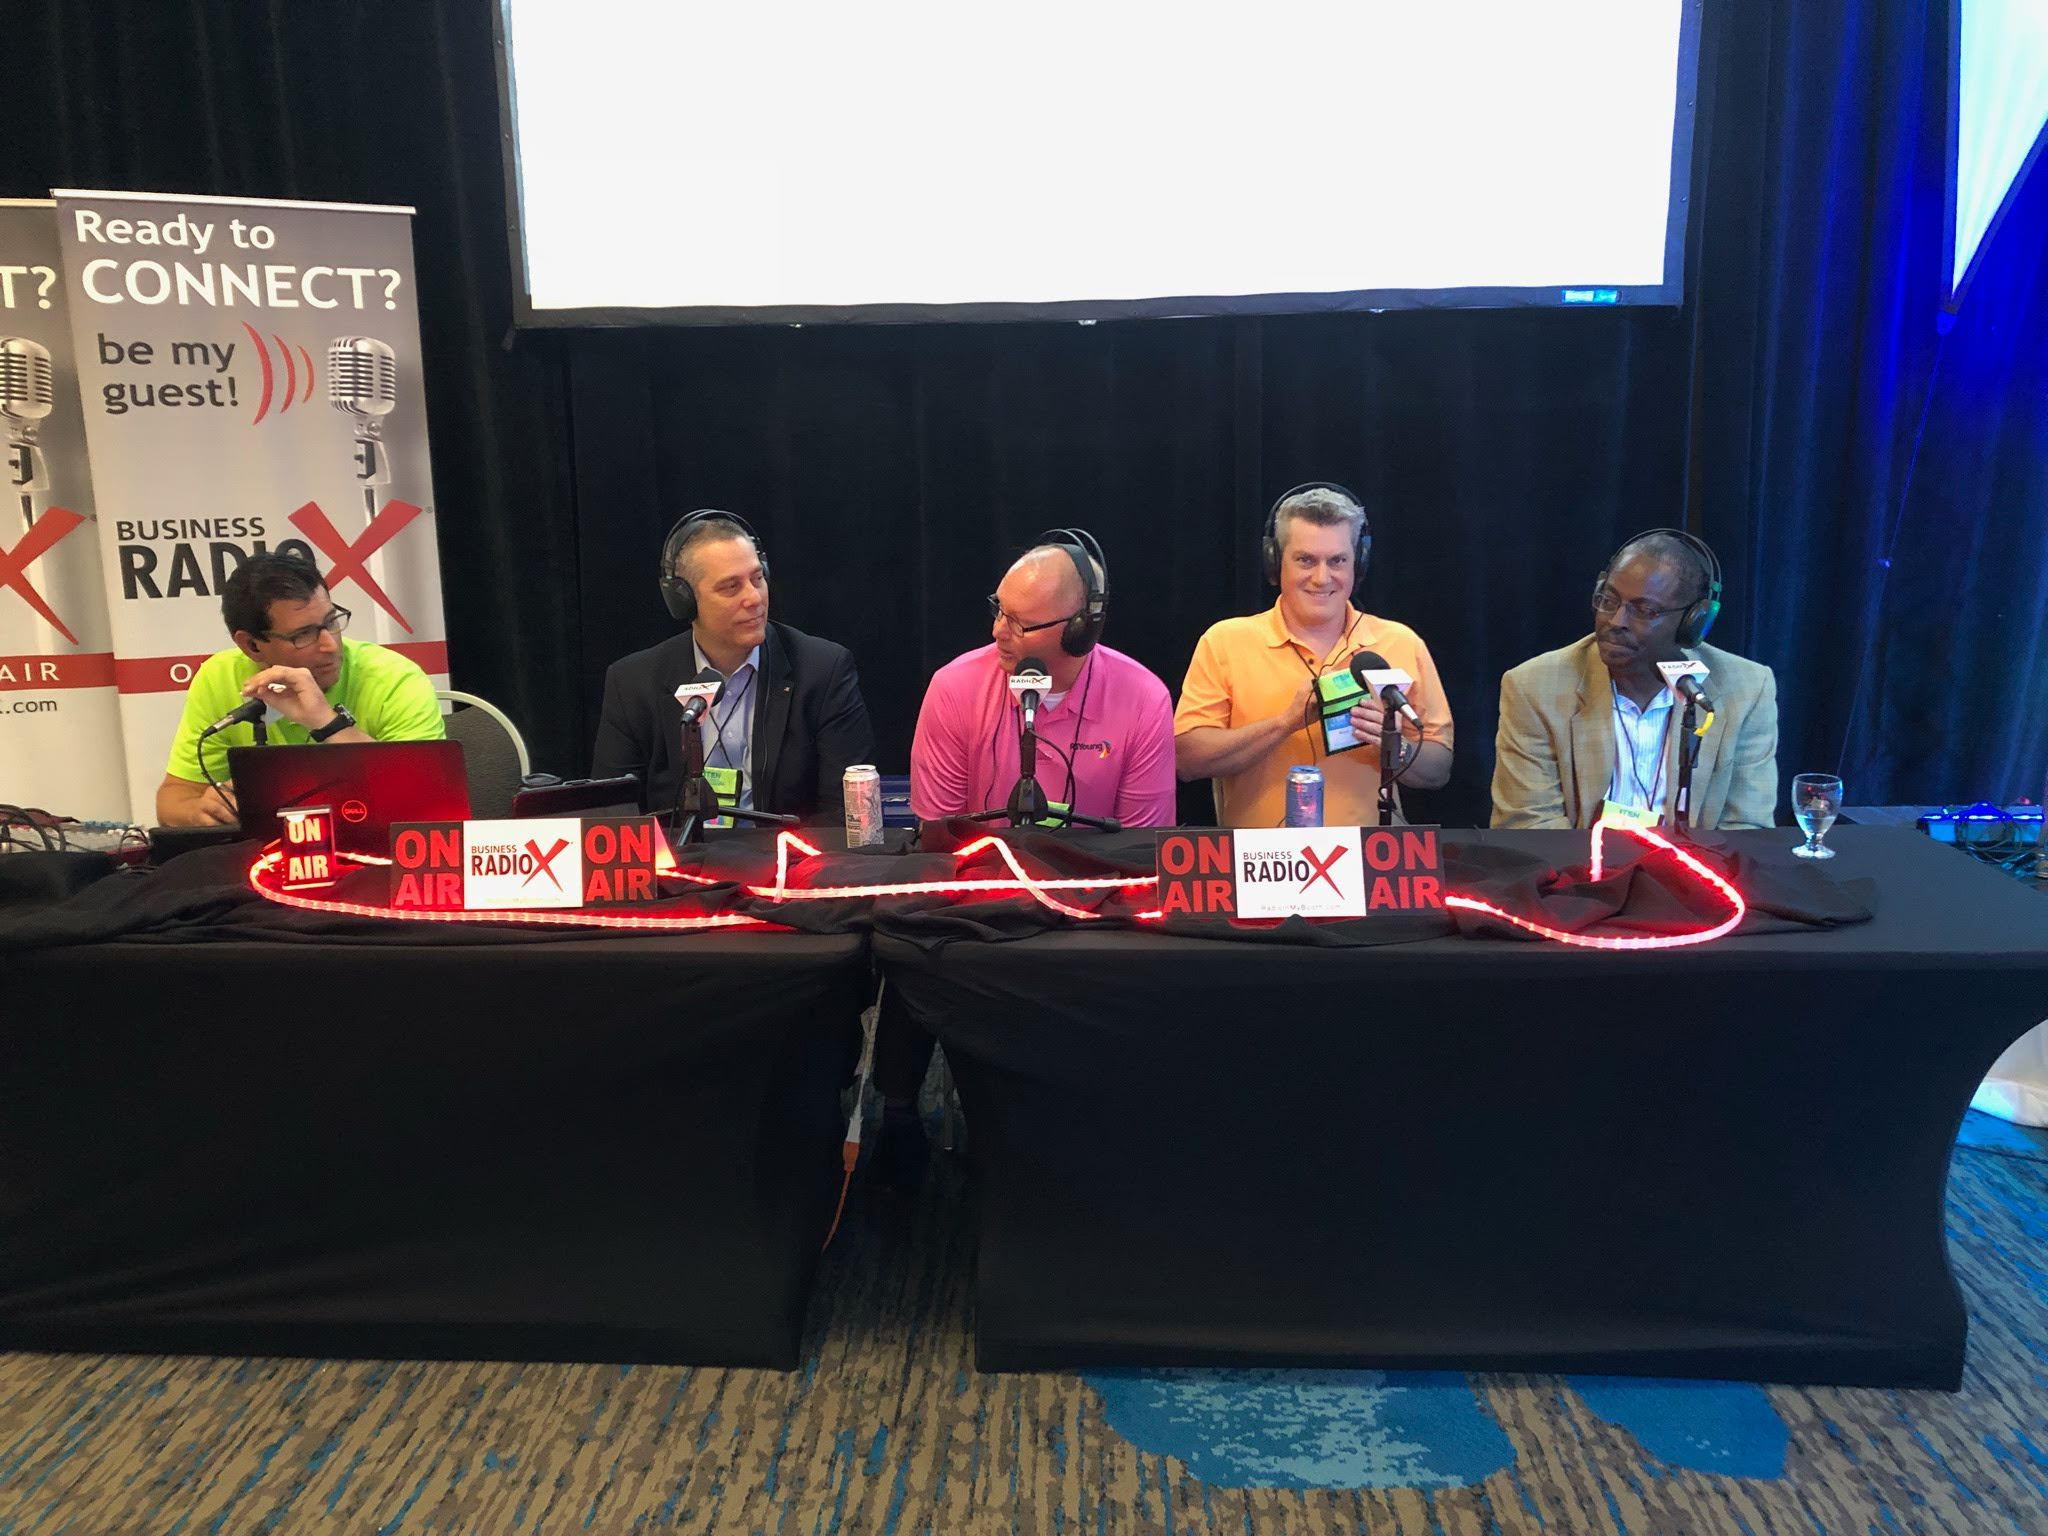 ITEN WIRED Radio- Broadcasting Live from the 2018 Summit Ep. 2